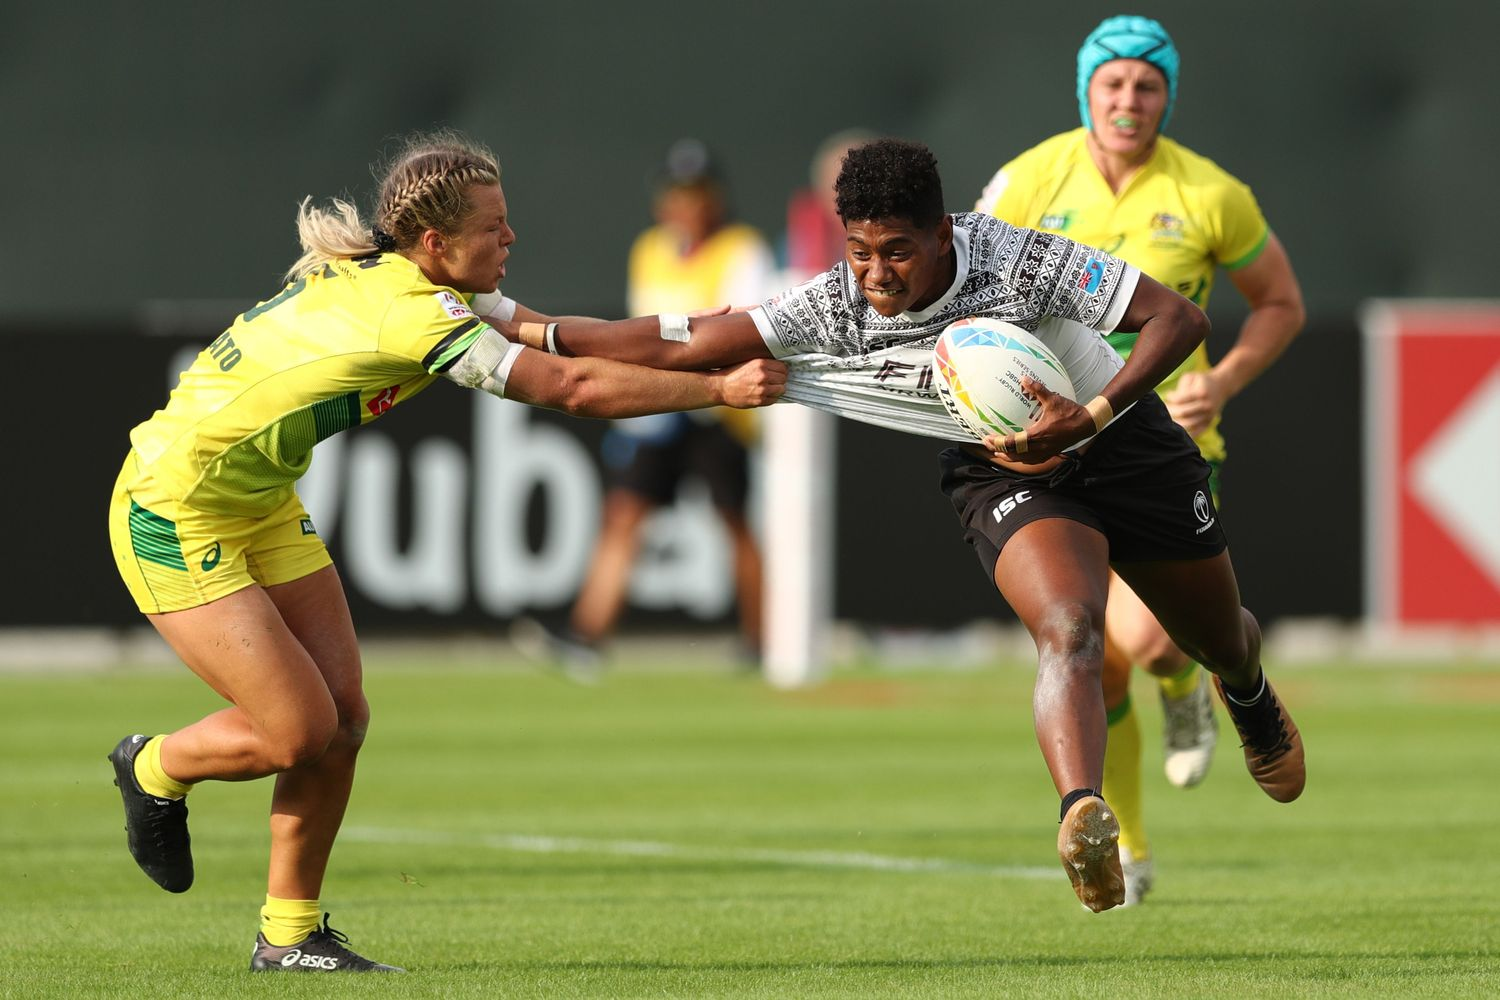 Dubai Emirates Airline Rugby Sevens 2019 - Women's